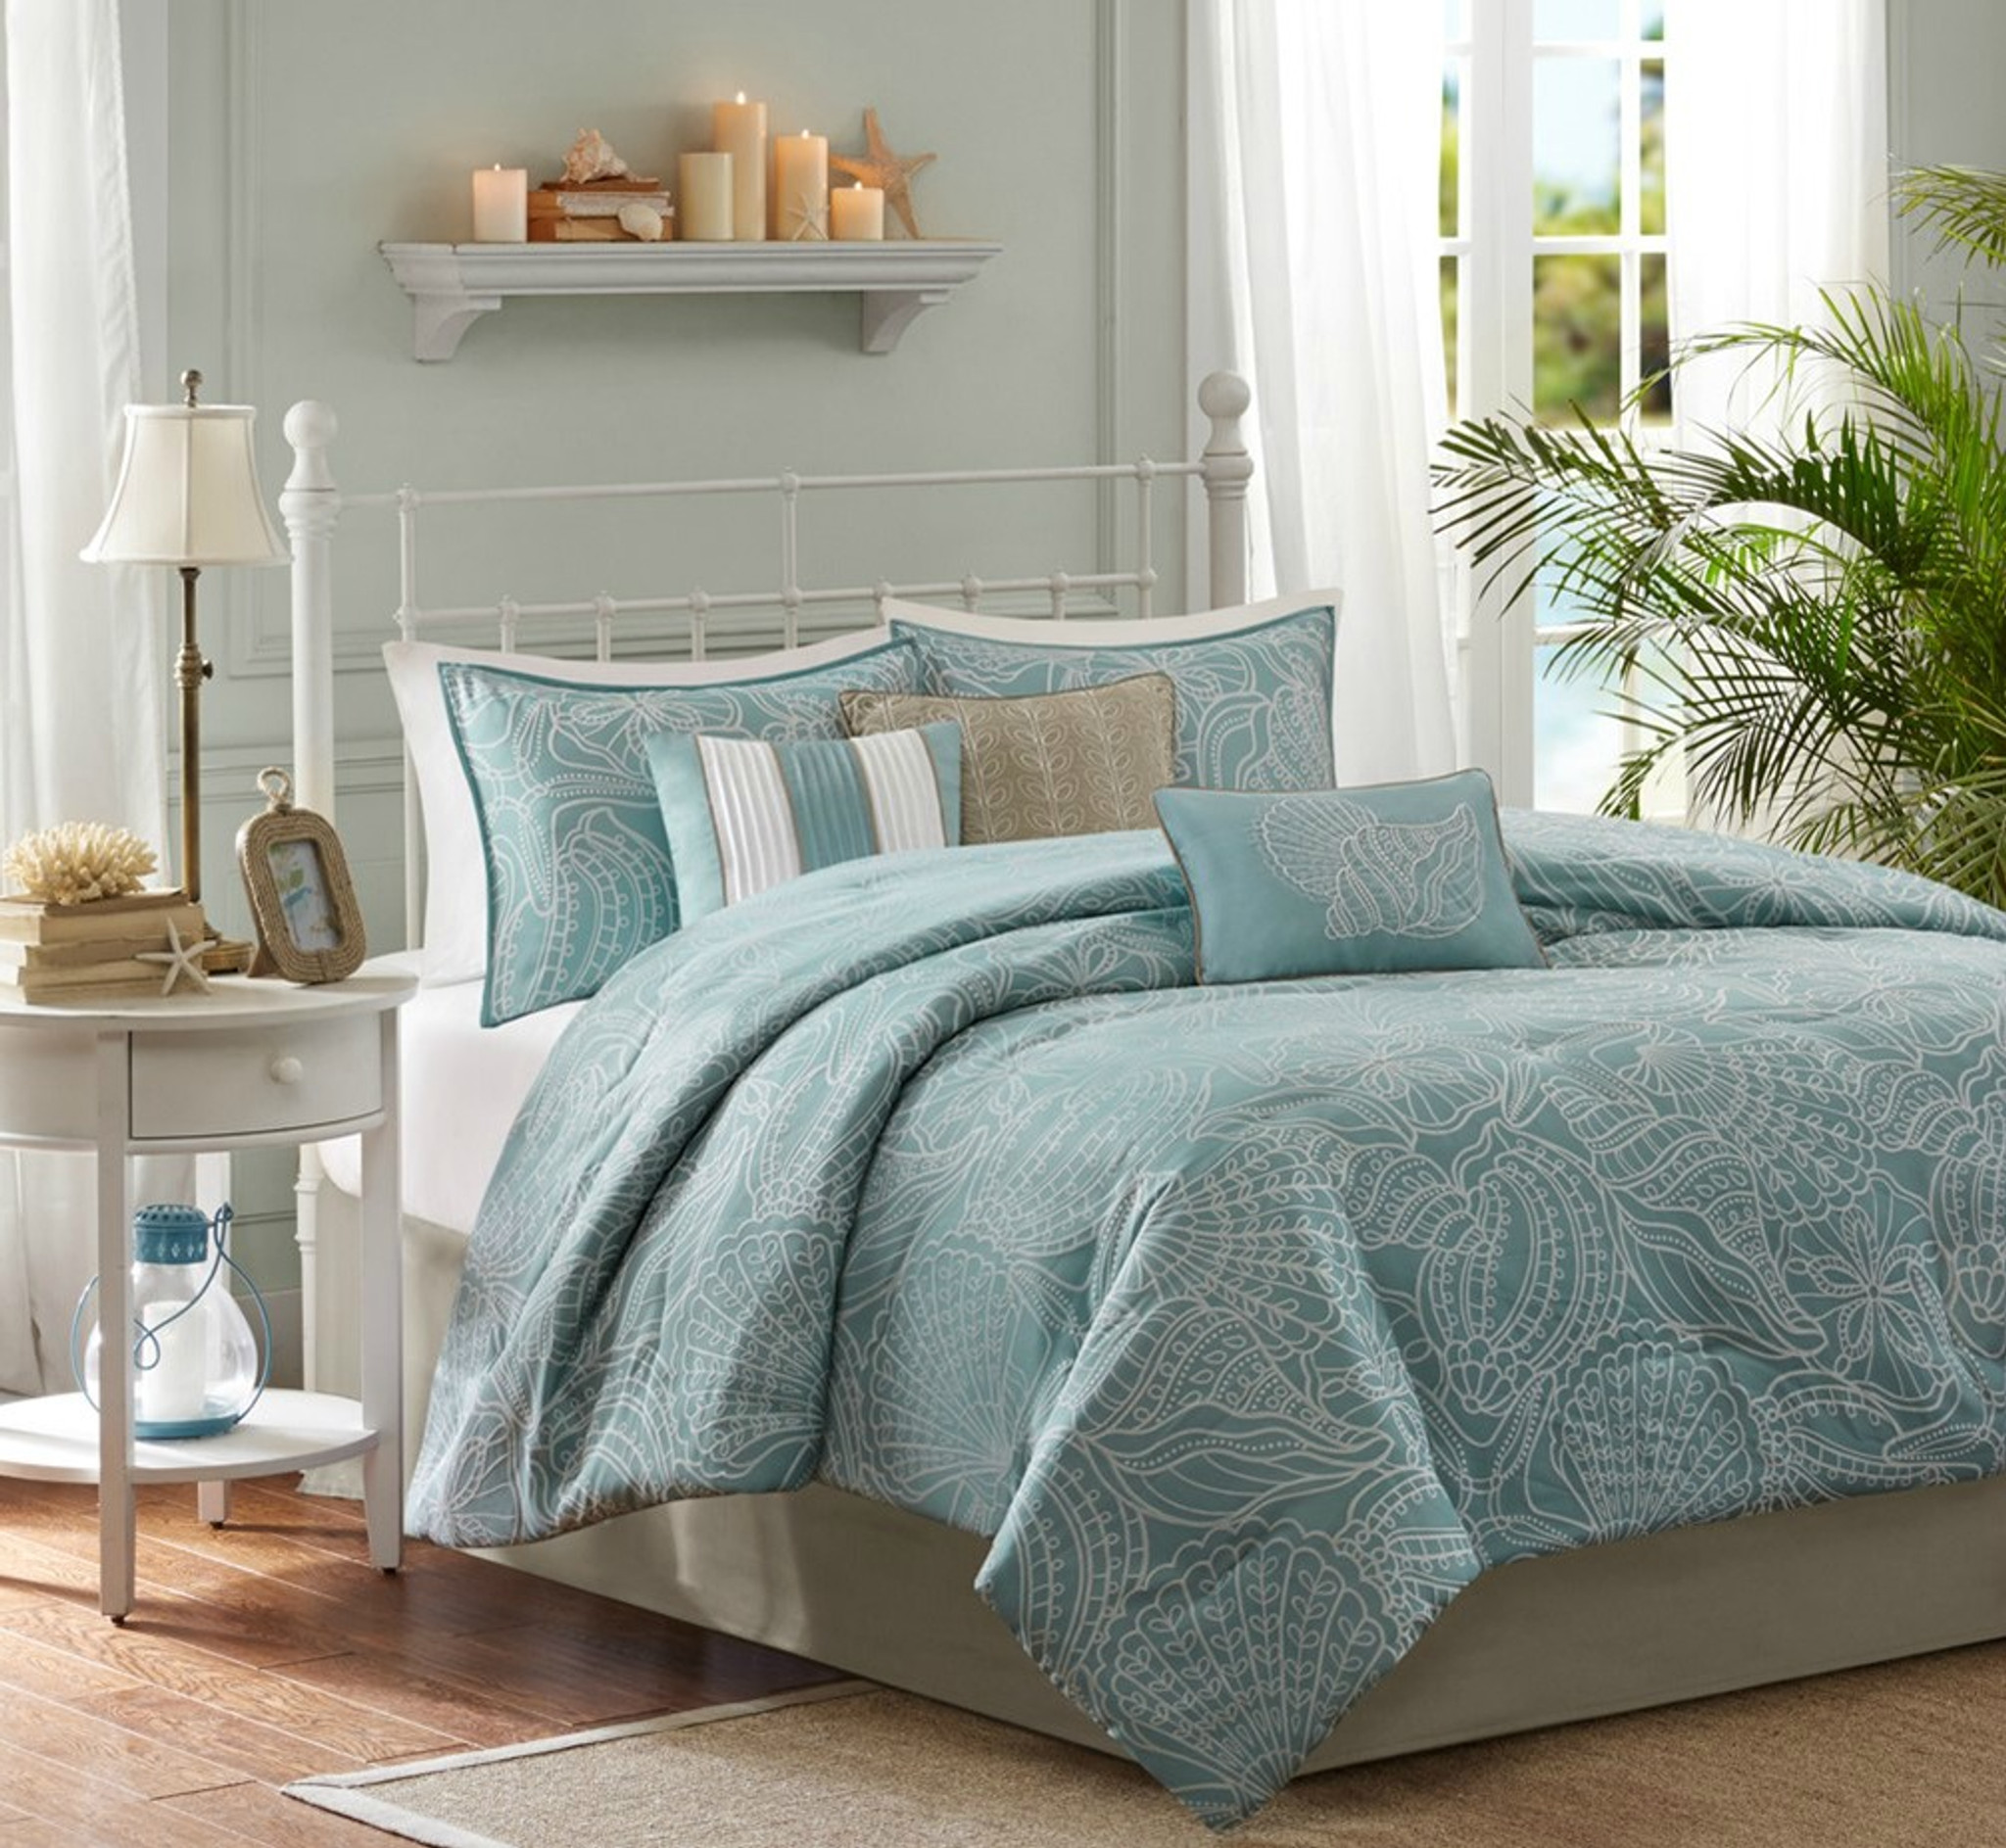 Picture of: Carmel By The Sea Blue Comforter Set Queen Size Caron S Beach House